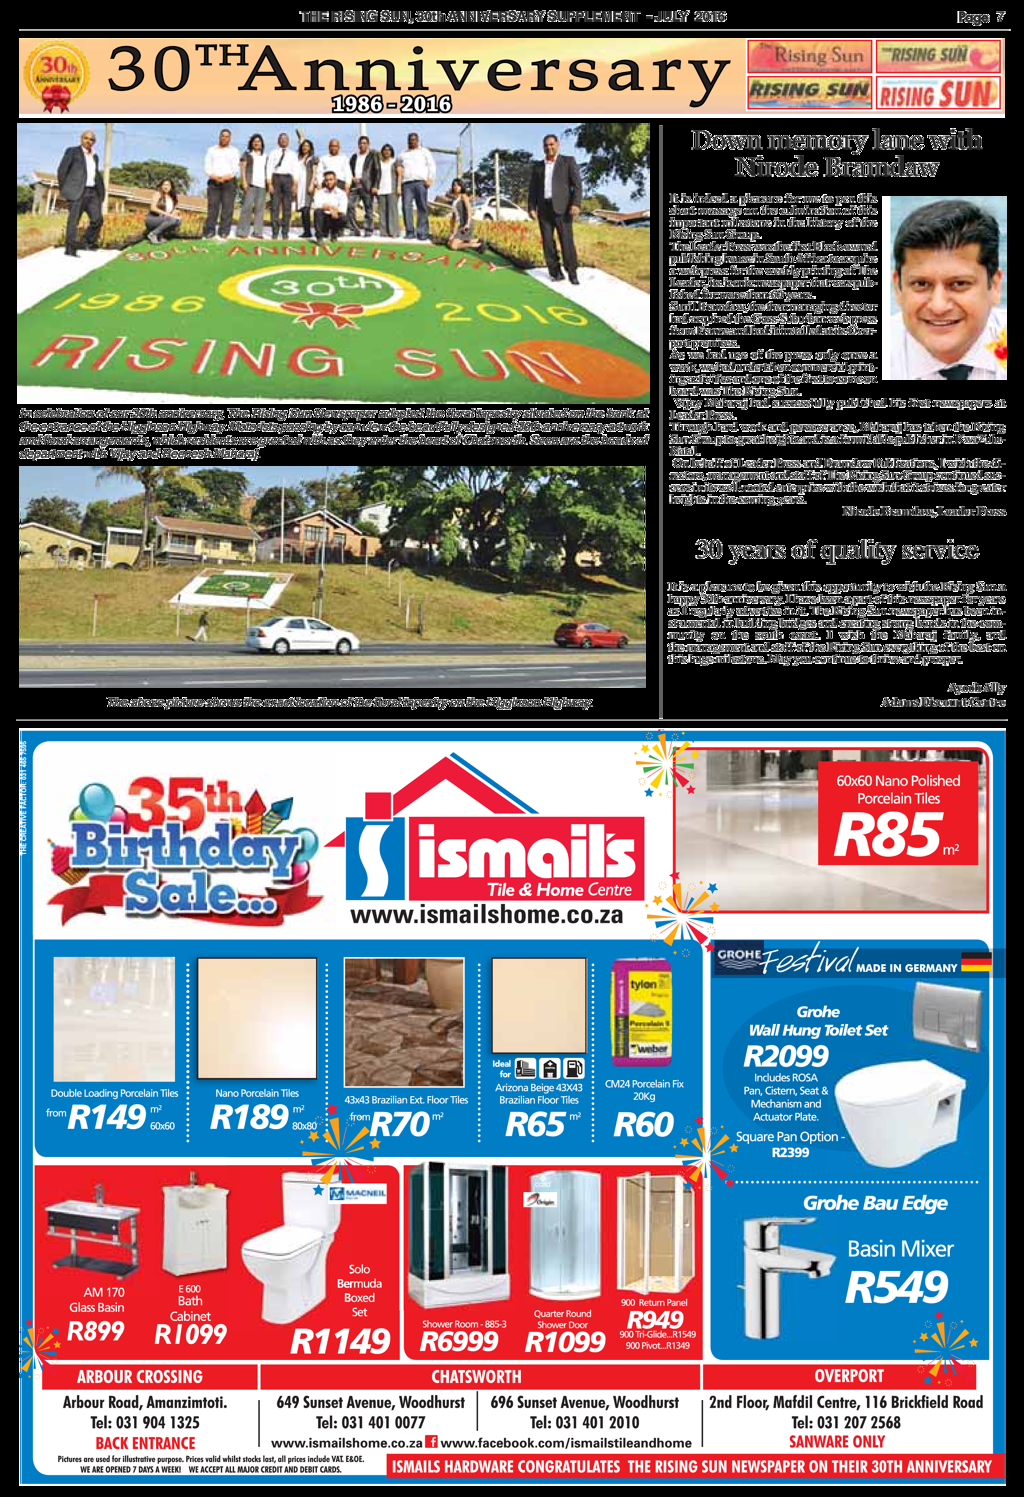 celebrating-our-30th-anniversary-epapers-page-7